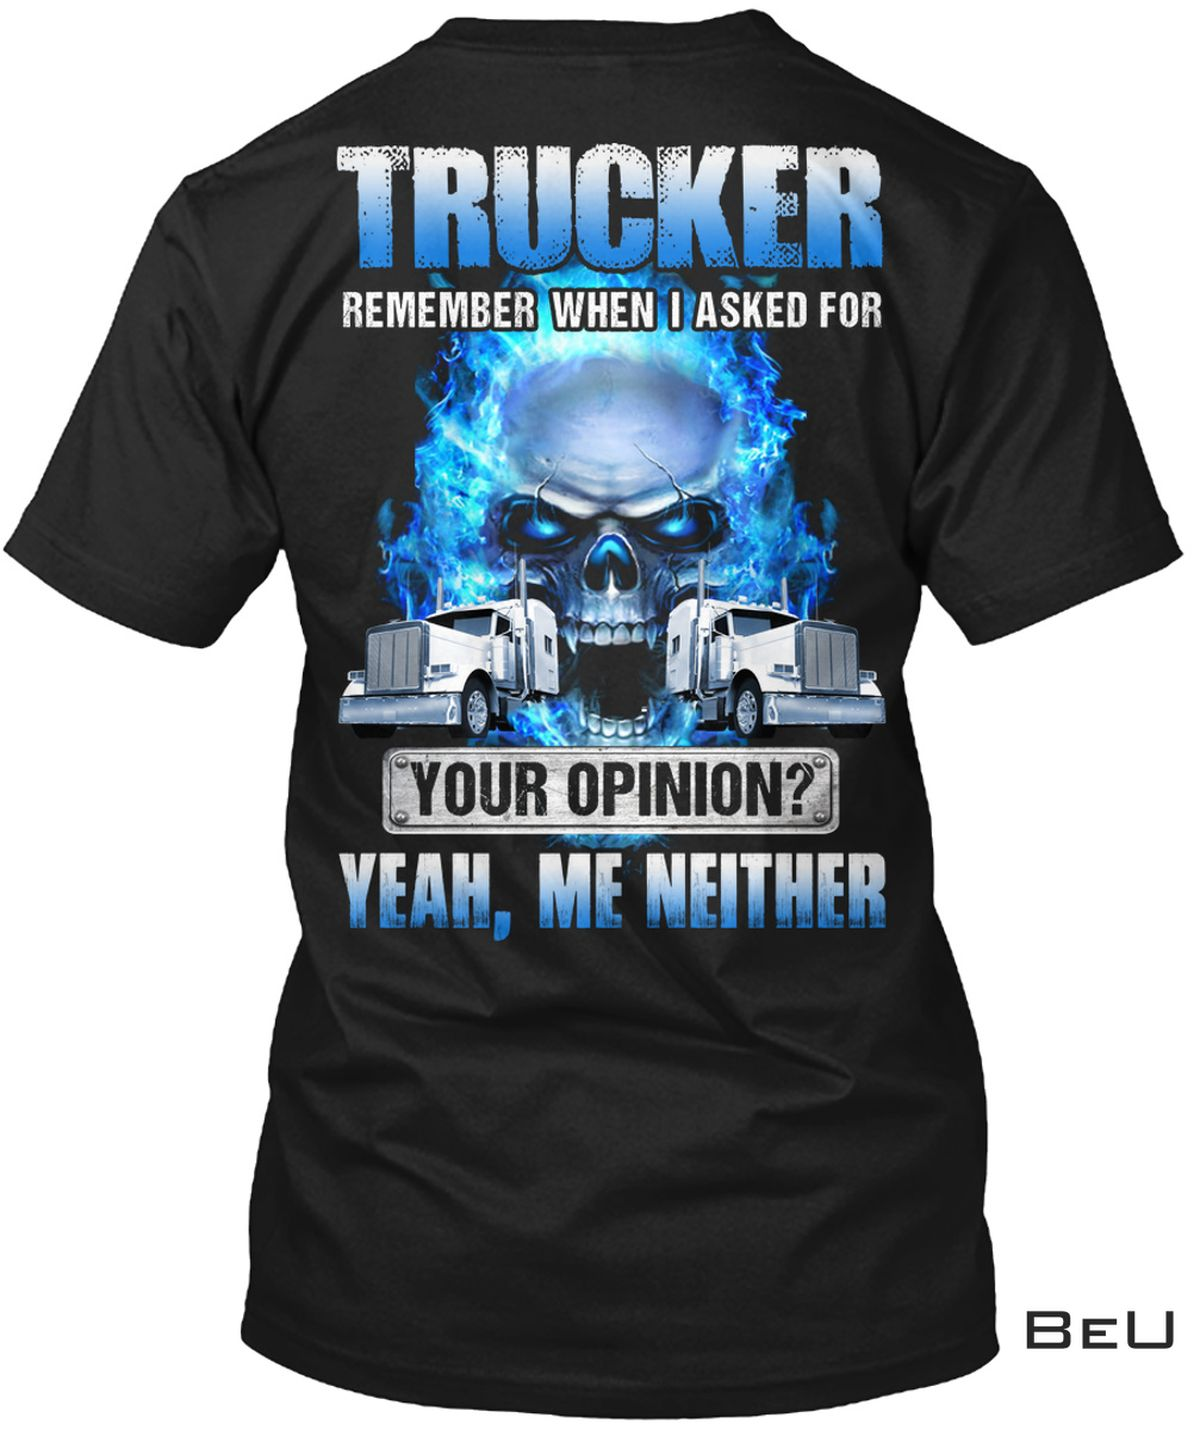 Ghost Rider Trucker Remember When I Asked For Your Opinion Shirt